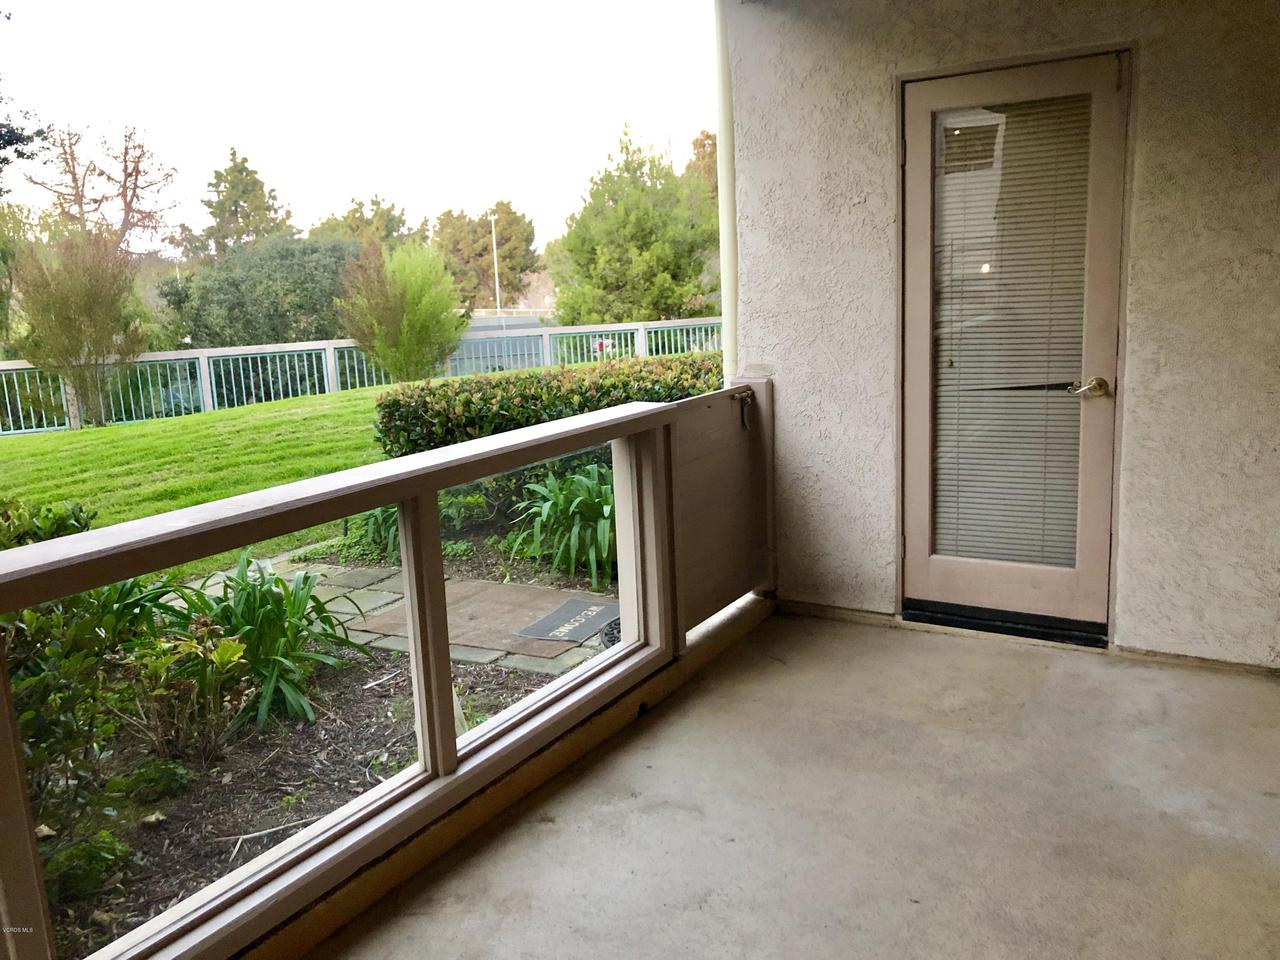 707 ISLAND VIEW, Port Hueneme, CA 93041 - DOWNSTAIRS PATIO